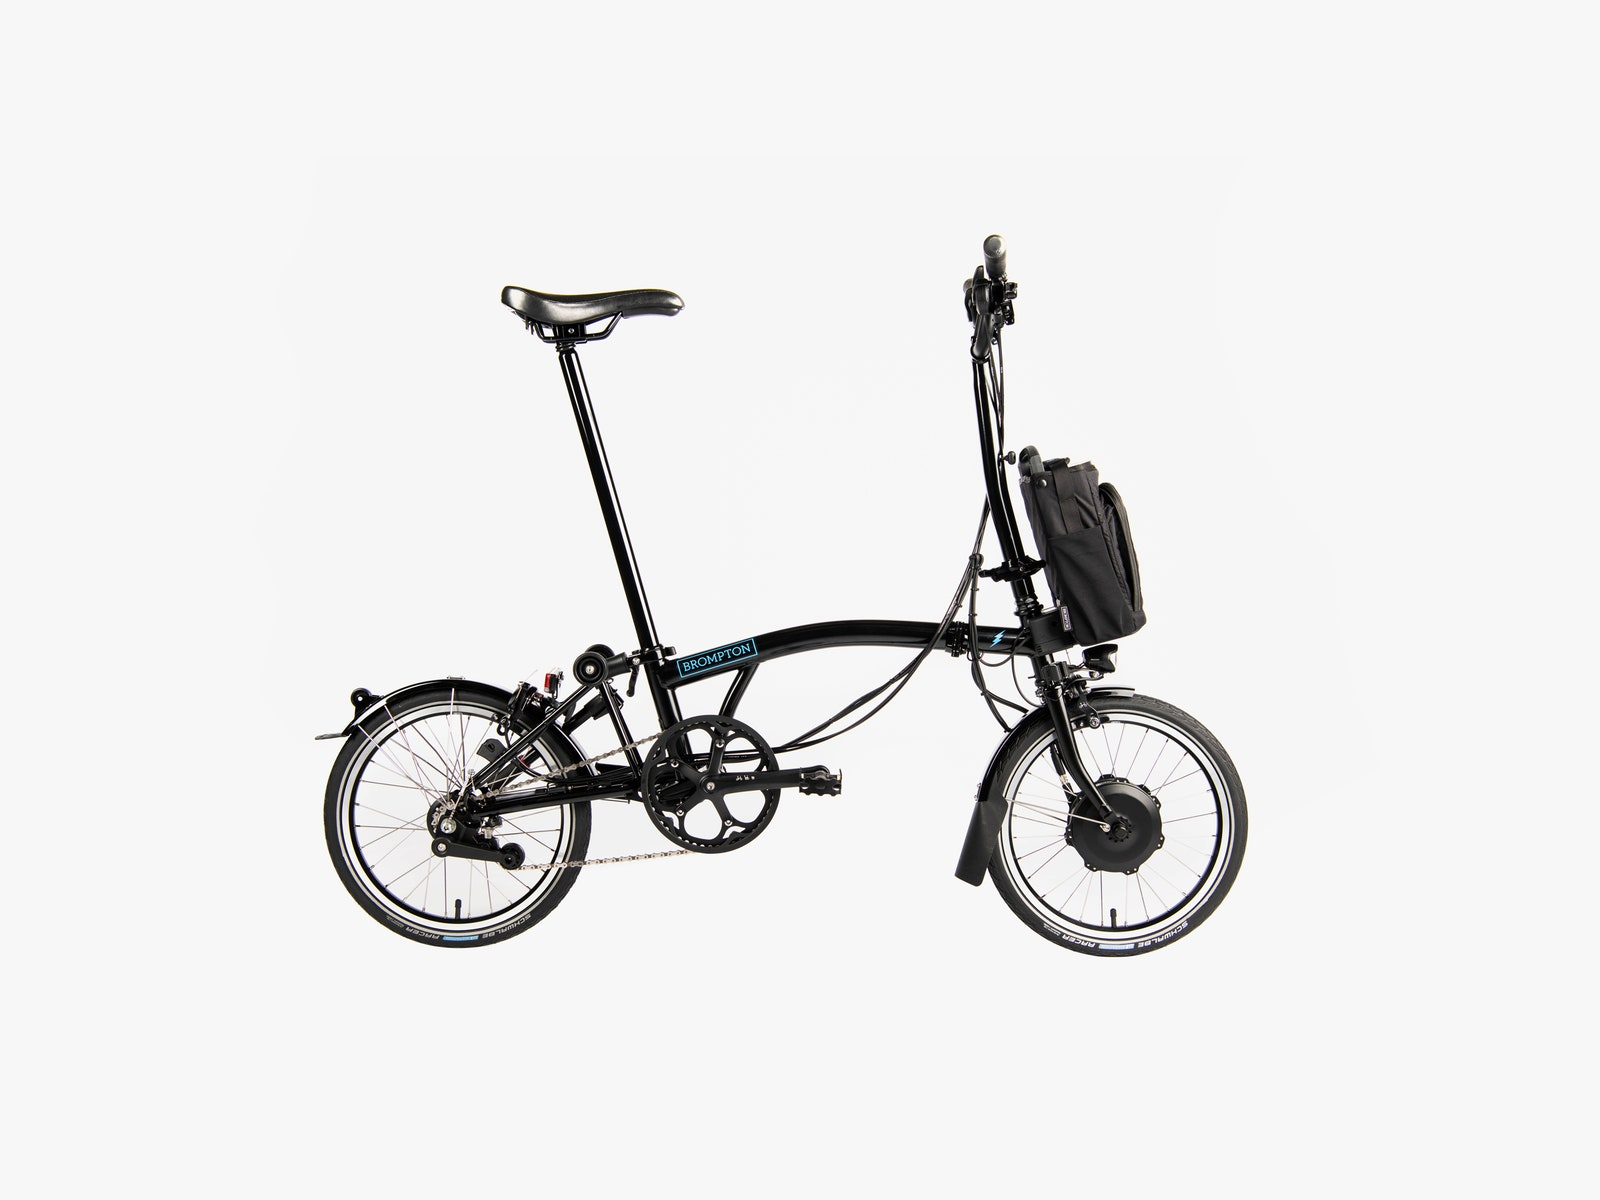 Brompton Electric Folding Bike Review: Stylish but Sluggish